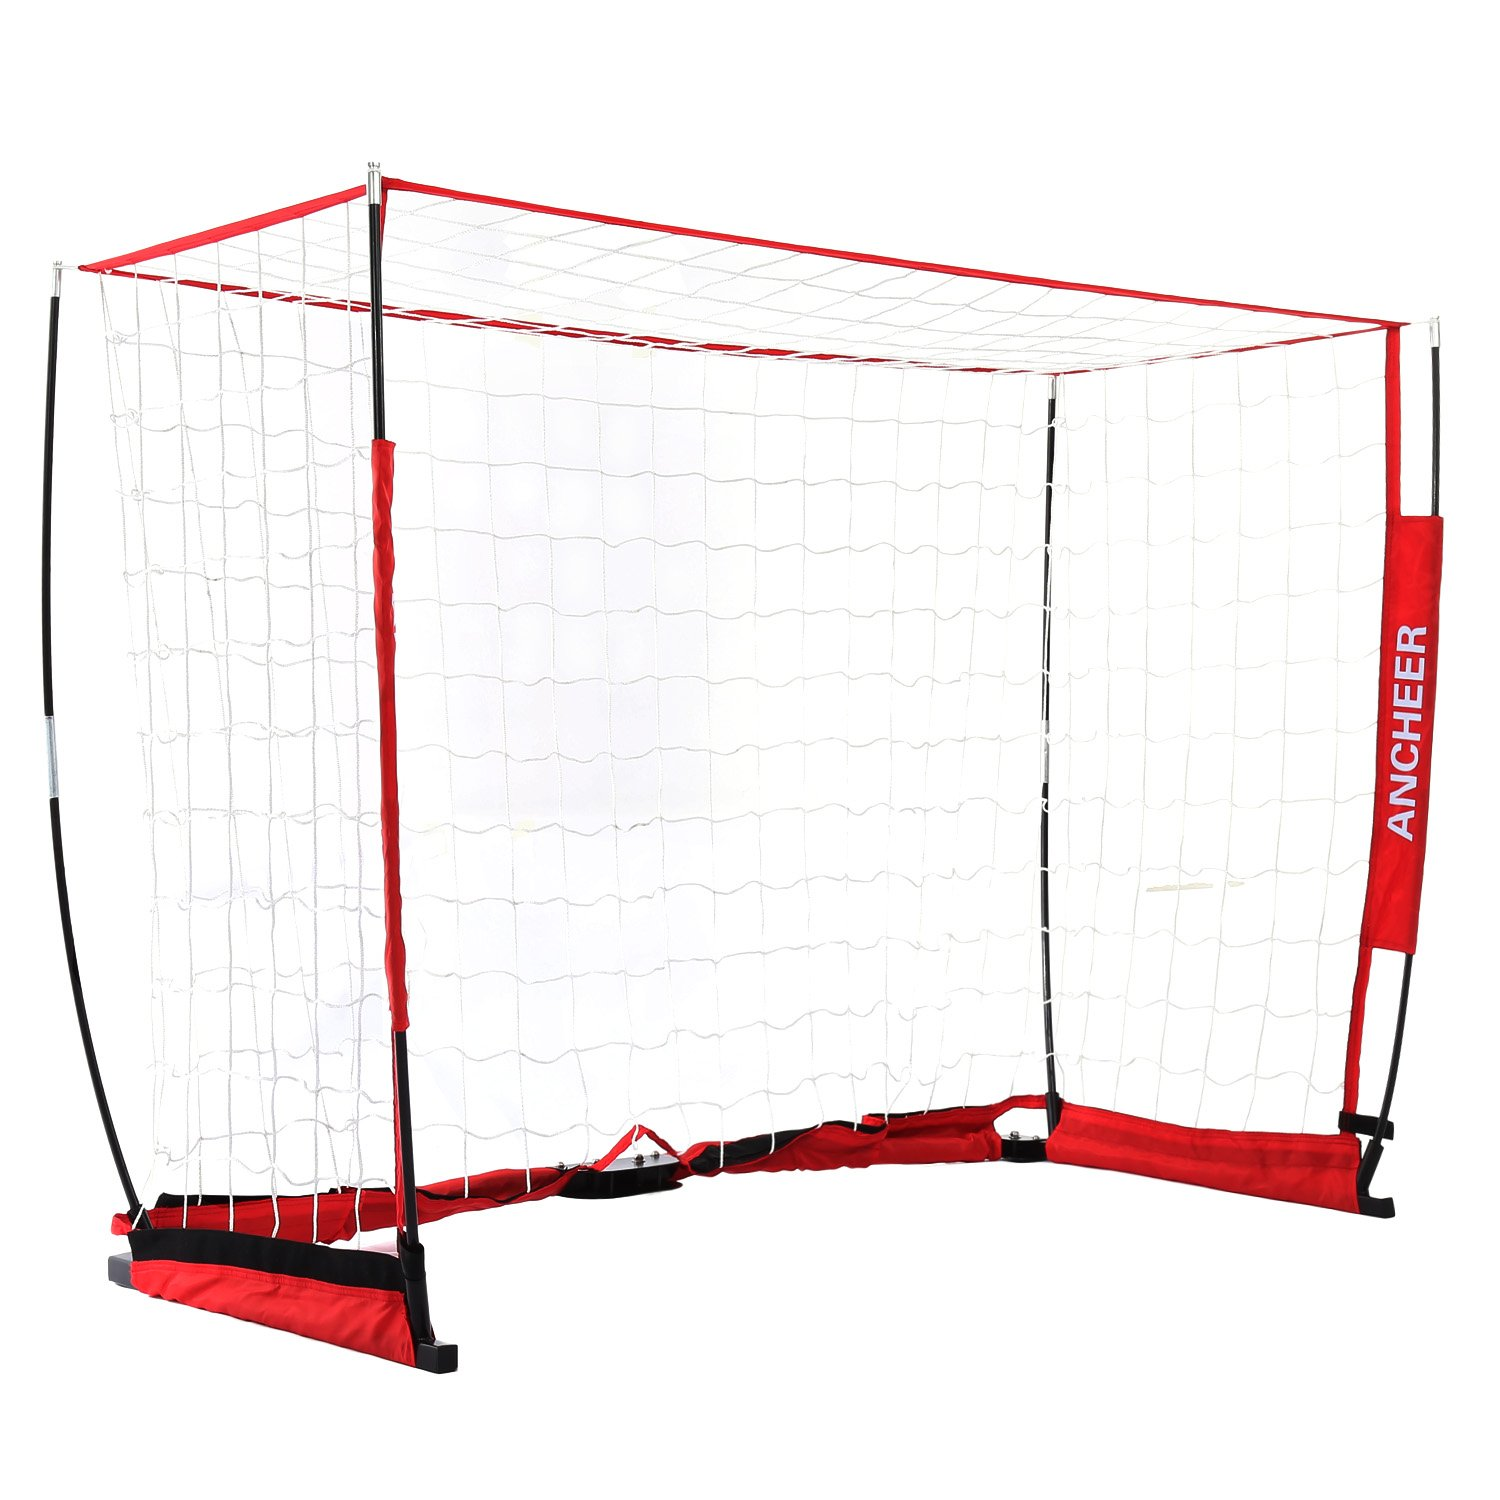 AncheerポータブルサッカーゴールFolding Soccer Goal Net in 3 Sizes B078GKF9P4 6x4ft 6x4ft